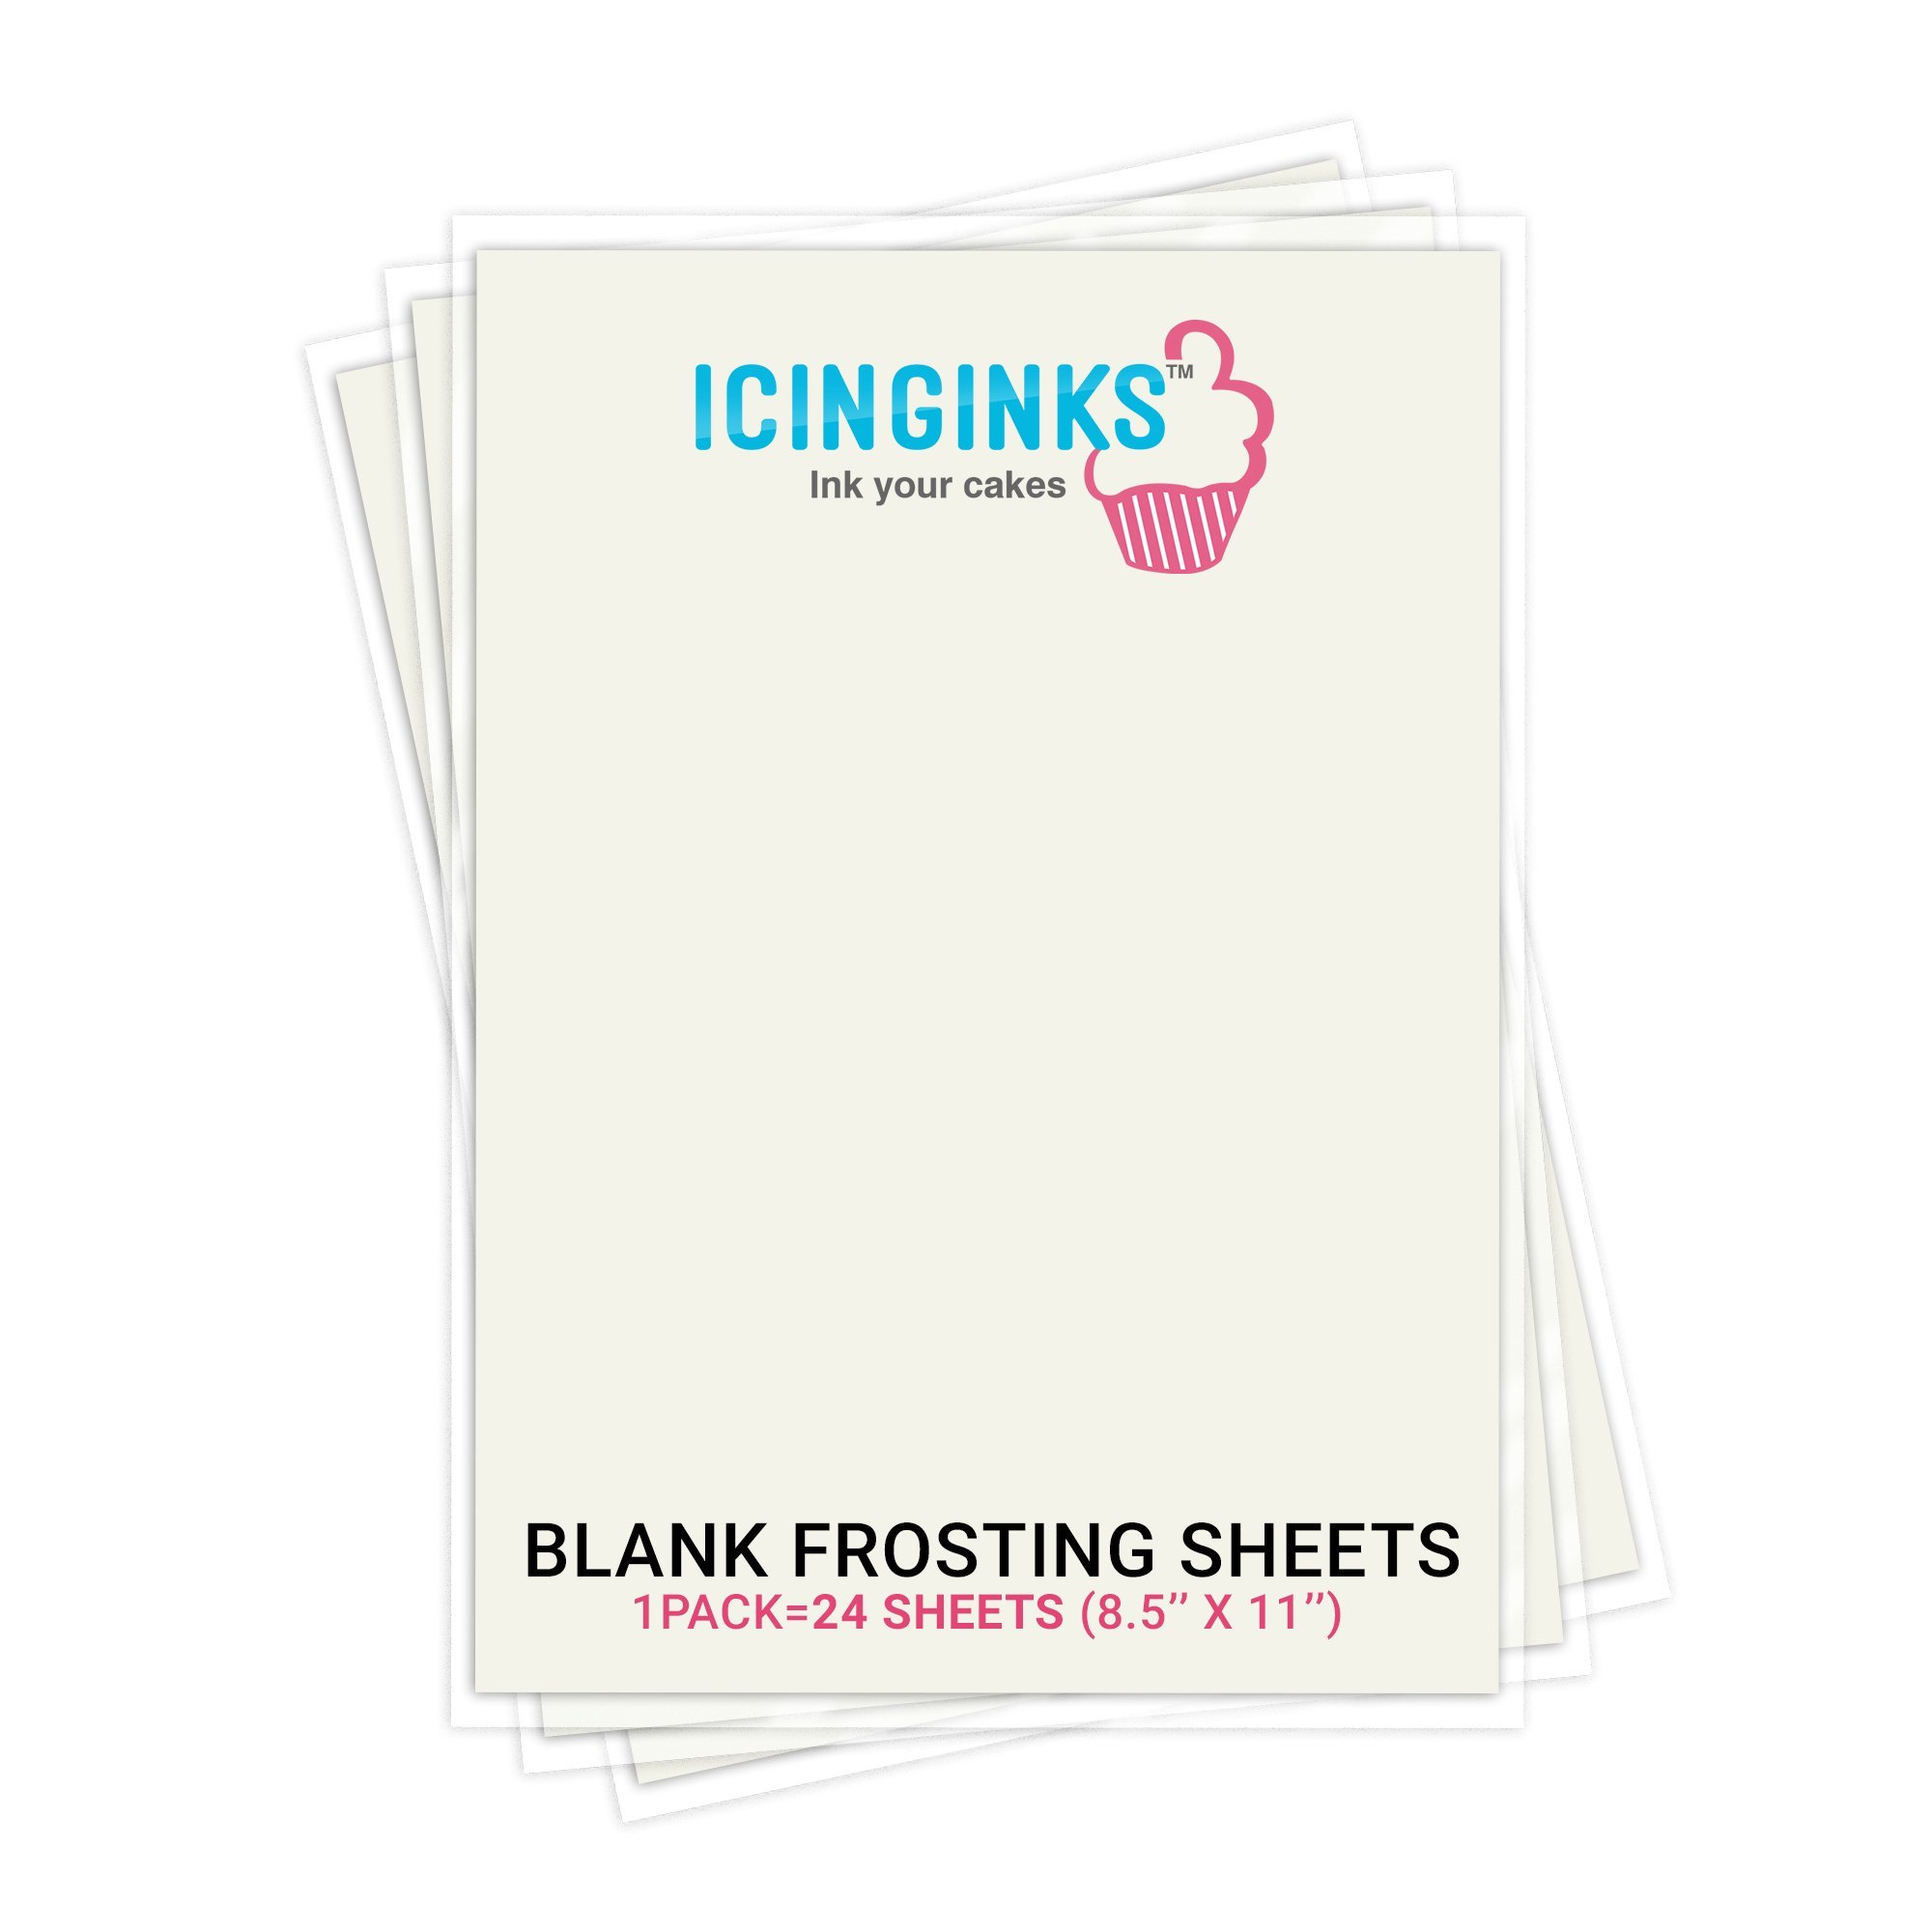 Premium Edible Frosting Sheets, Sugar Sheets, Icing sheets 24 count (8.5'' X 11'') A4 Edible Paper for cake printers